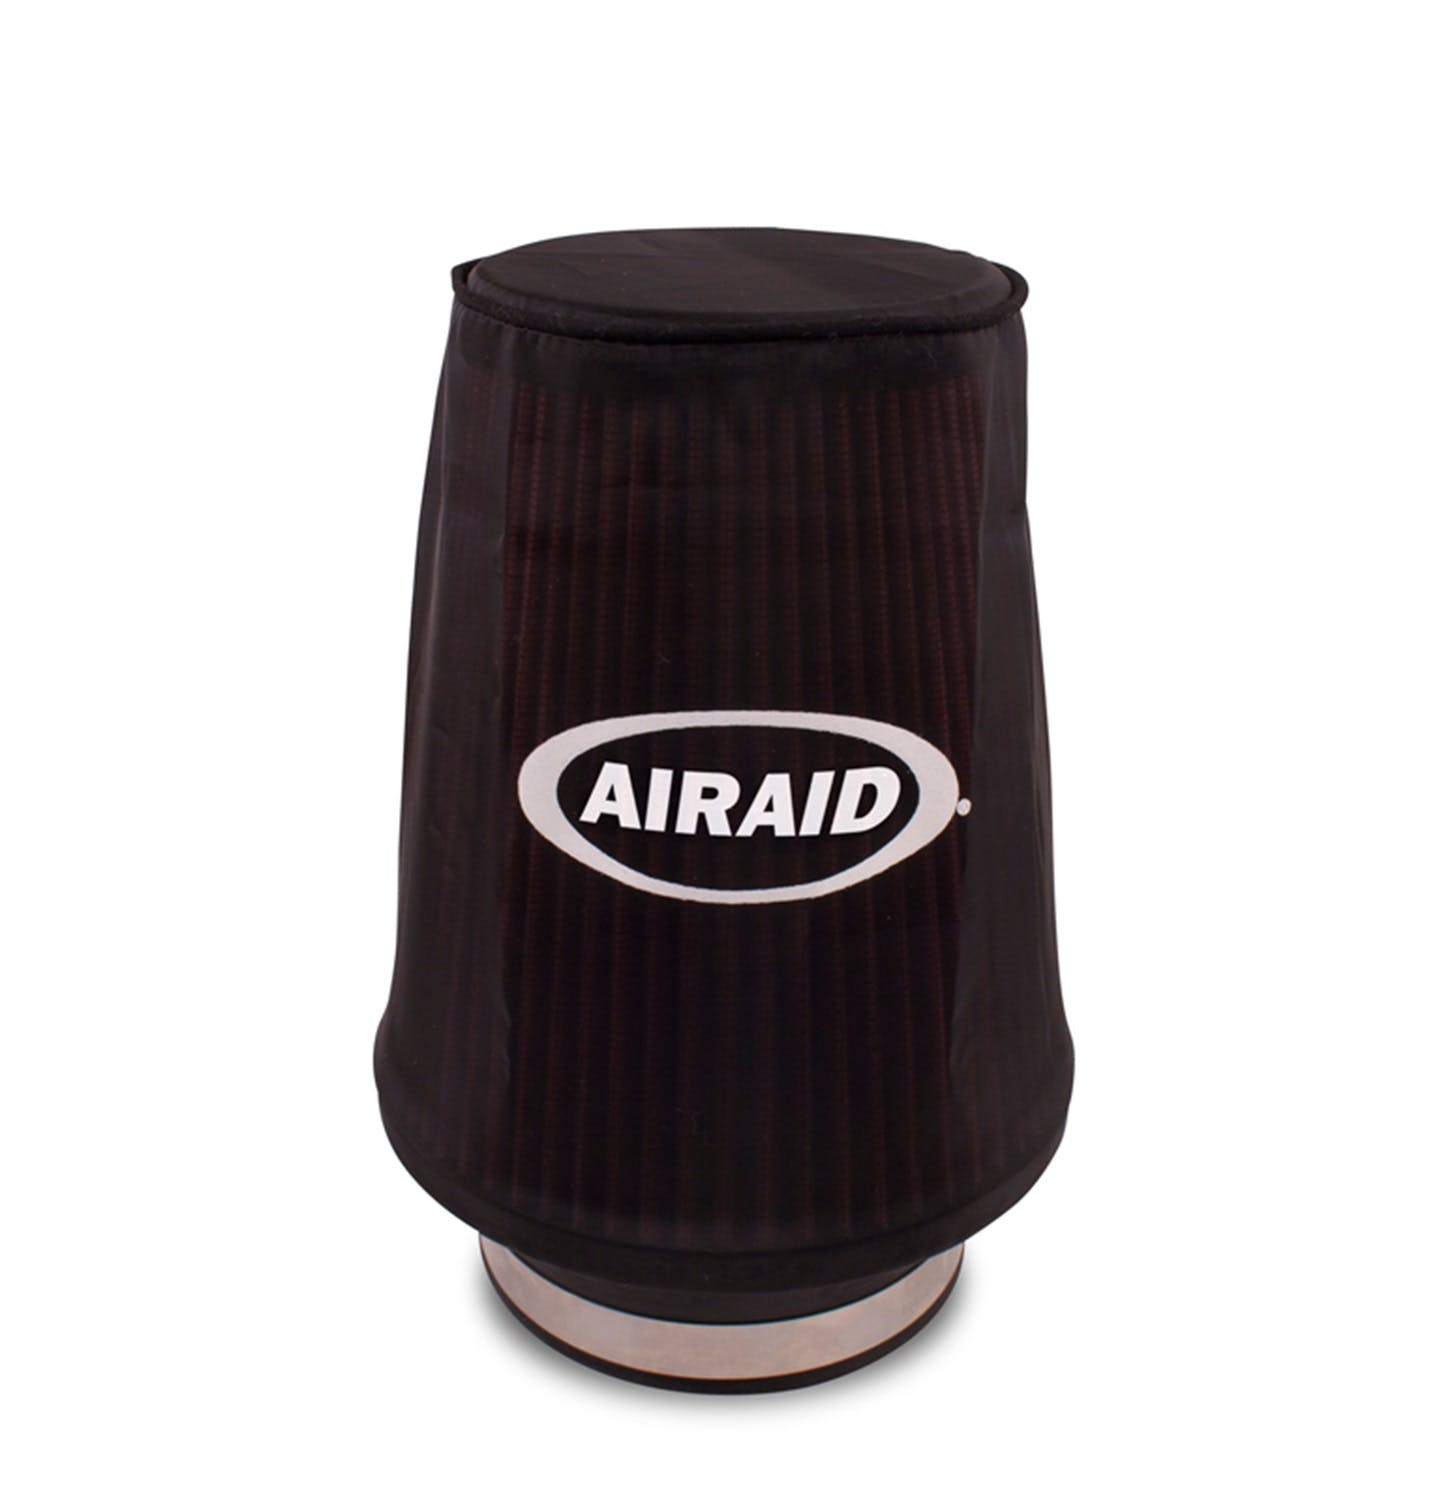 AIRAID FILTERS Intake and Snorkel Systems Pre-Filter AIR-799-420